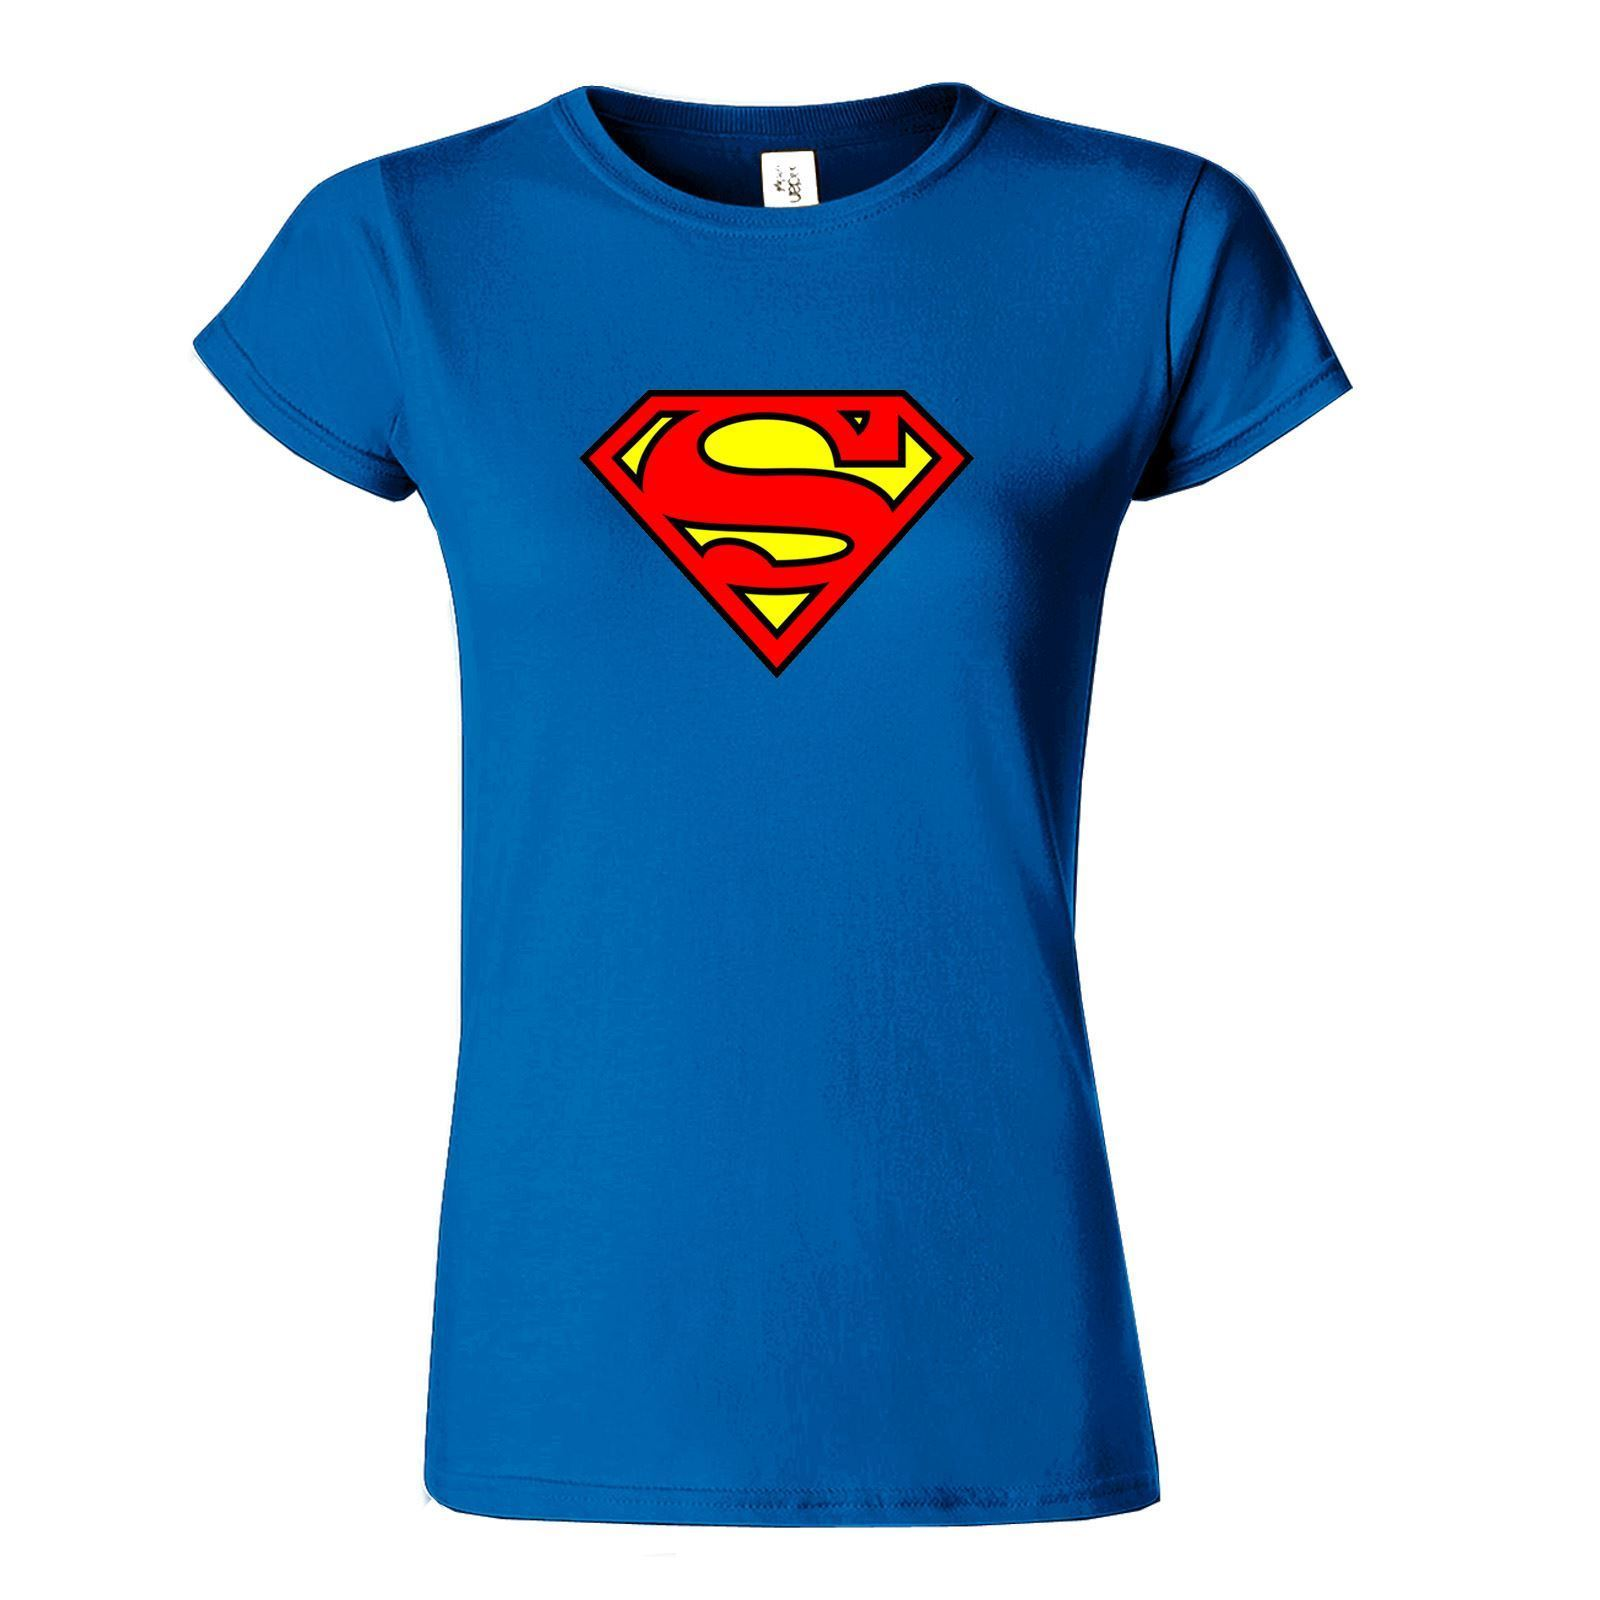 Superman-Women-Laides-Casual-Wear-Present-Fitted-Top-T-shirt